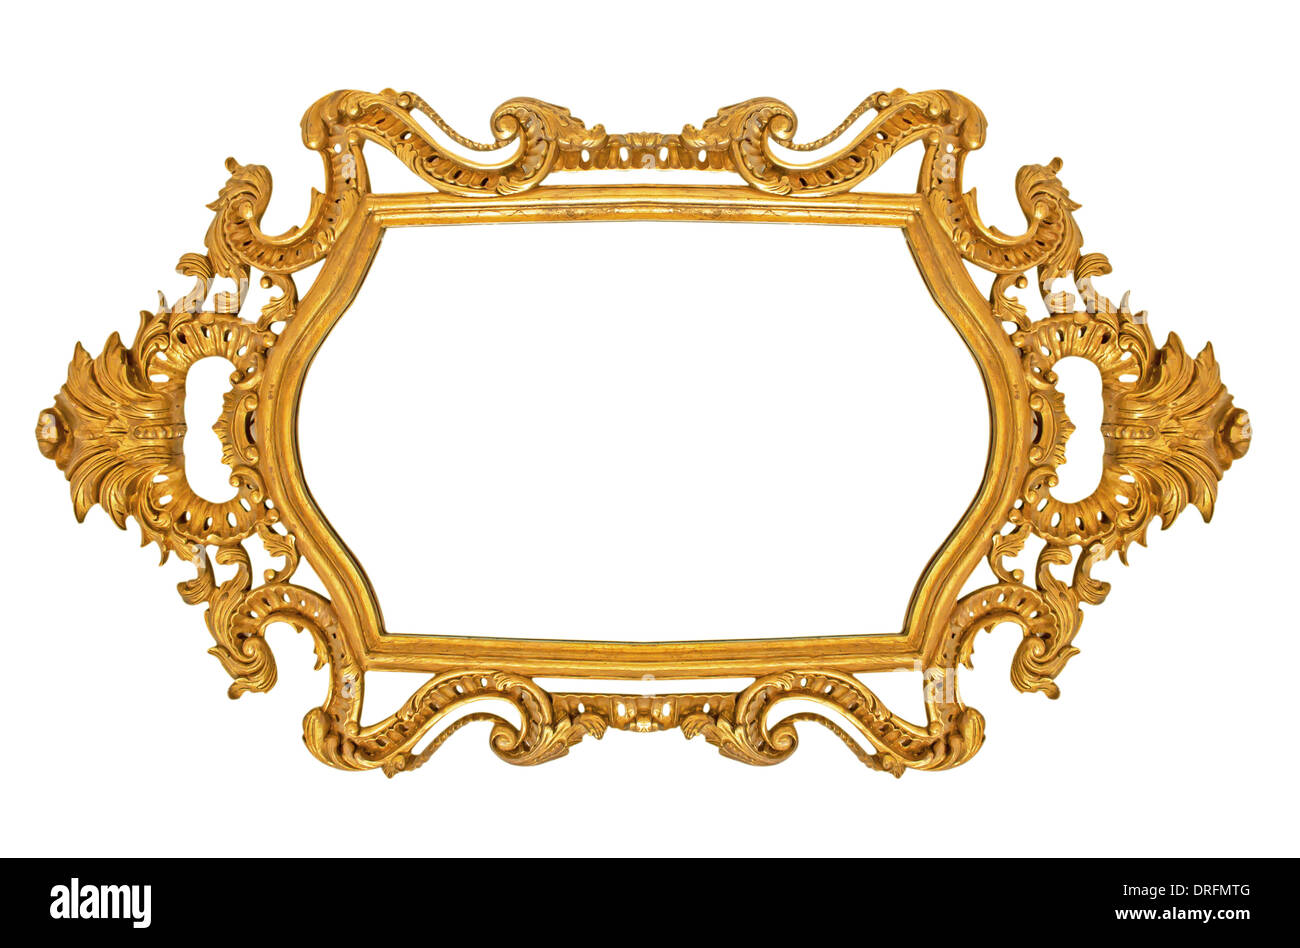 Old antique gold picture frame wall, wallpaper, decorative objects ...